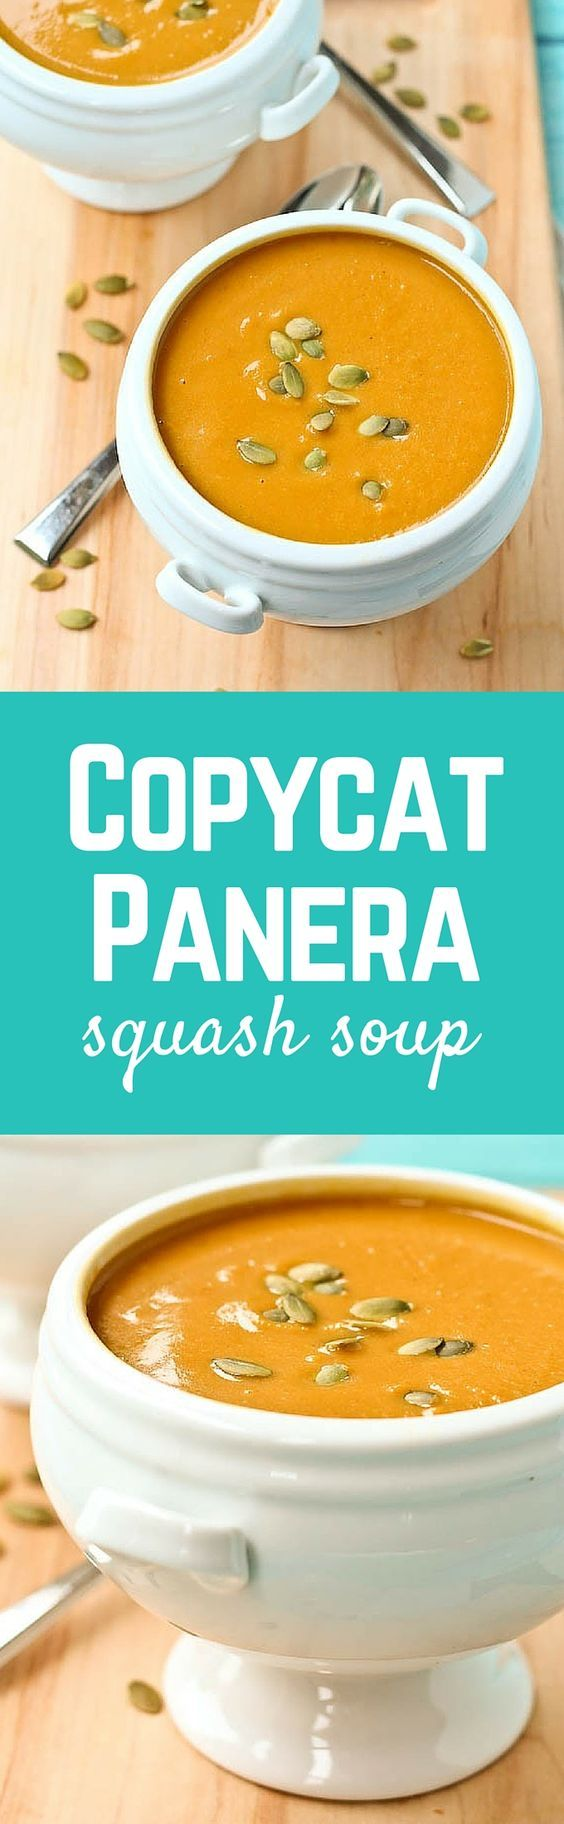 This Copycat Panera Bread Squash Soup tastes just like the original, but I made it a bit healthier! Get the easy fall soup recipe on RachelCooks.com!